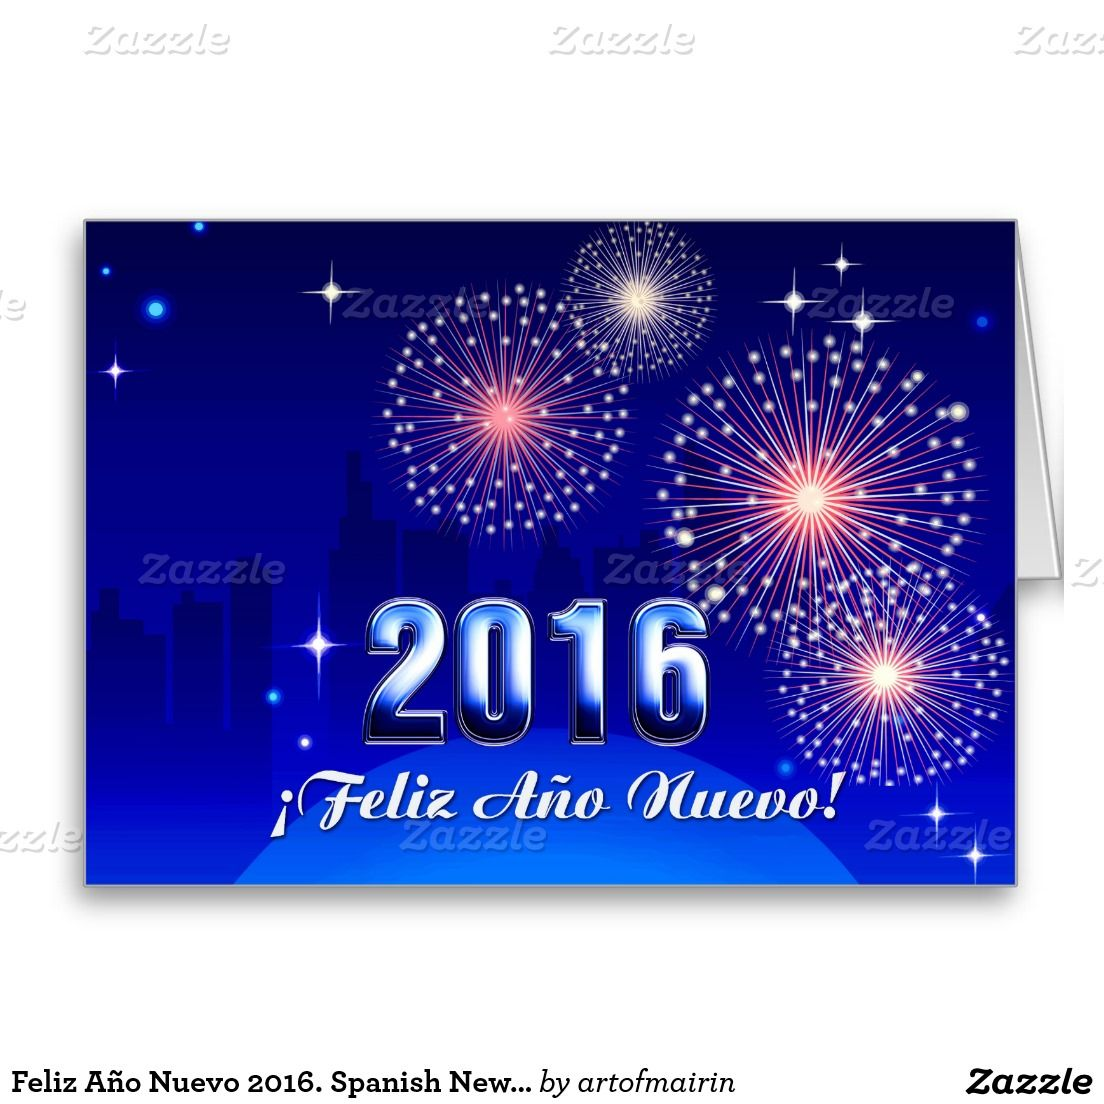 Feliz ao nuevo 2016 happy new year 2016 greeting cards in spanish happy new year 2016 greeting cards in spanish with a cityscape kristyandbryce Images